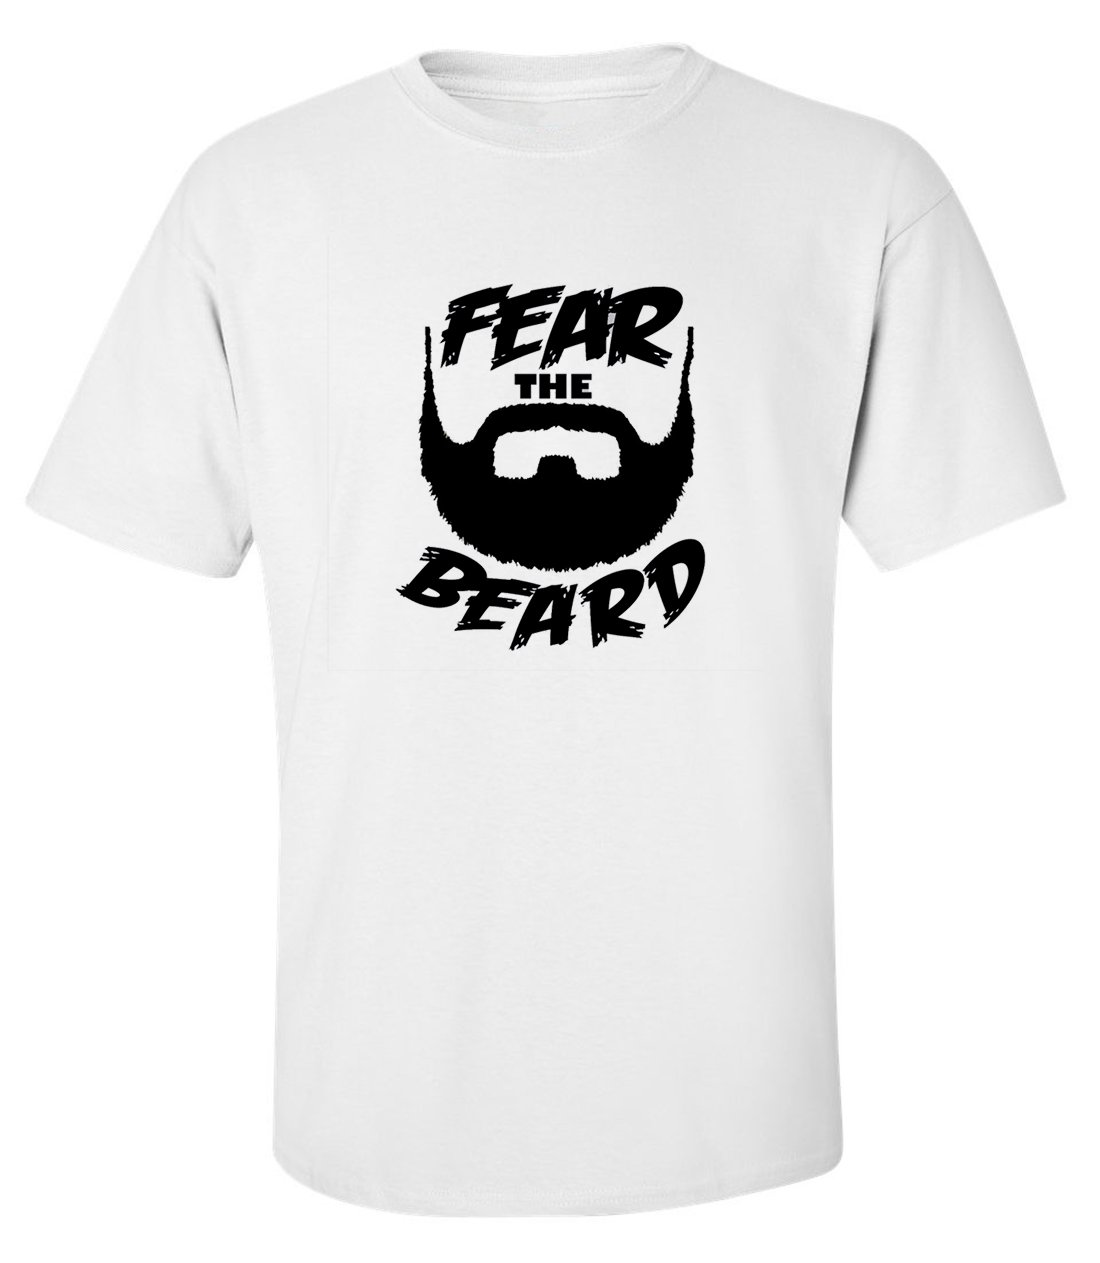 Fear the beard funny slogan men printed cotton white t-shirt size XL